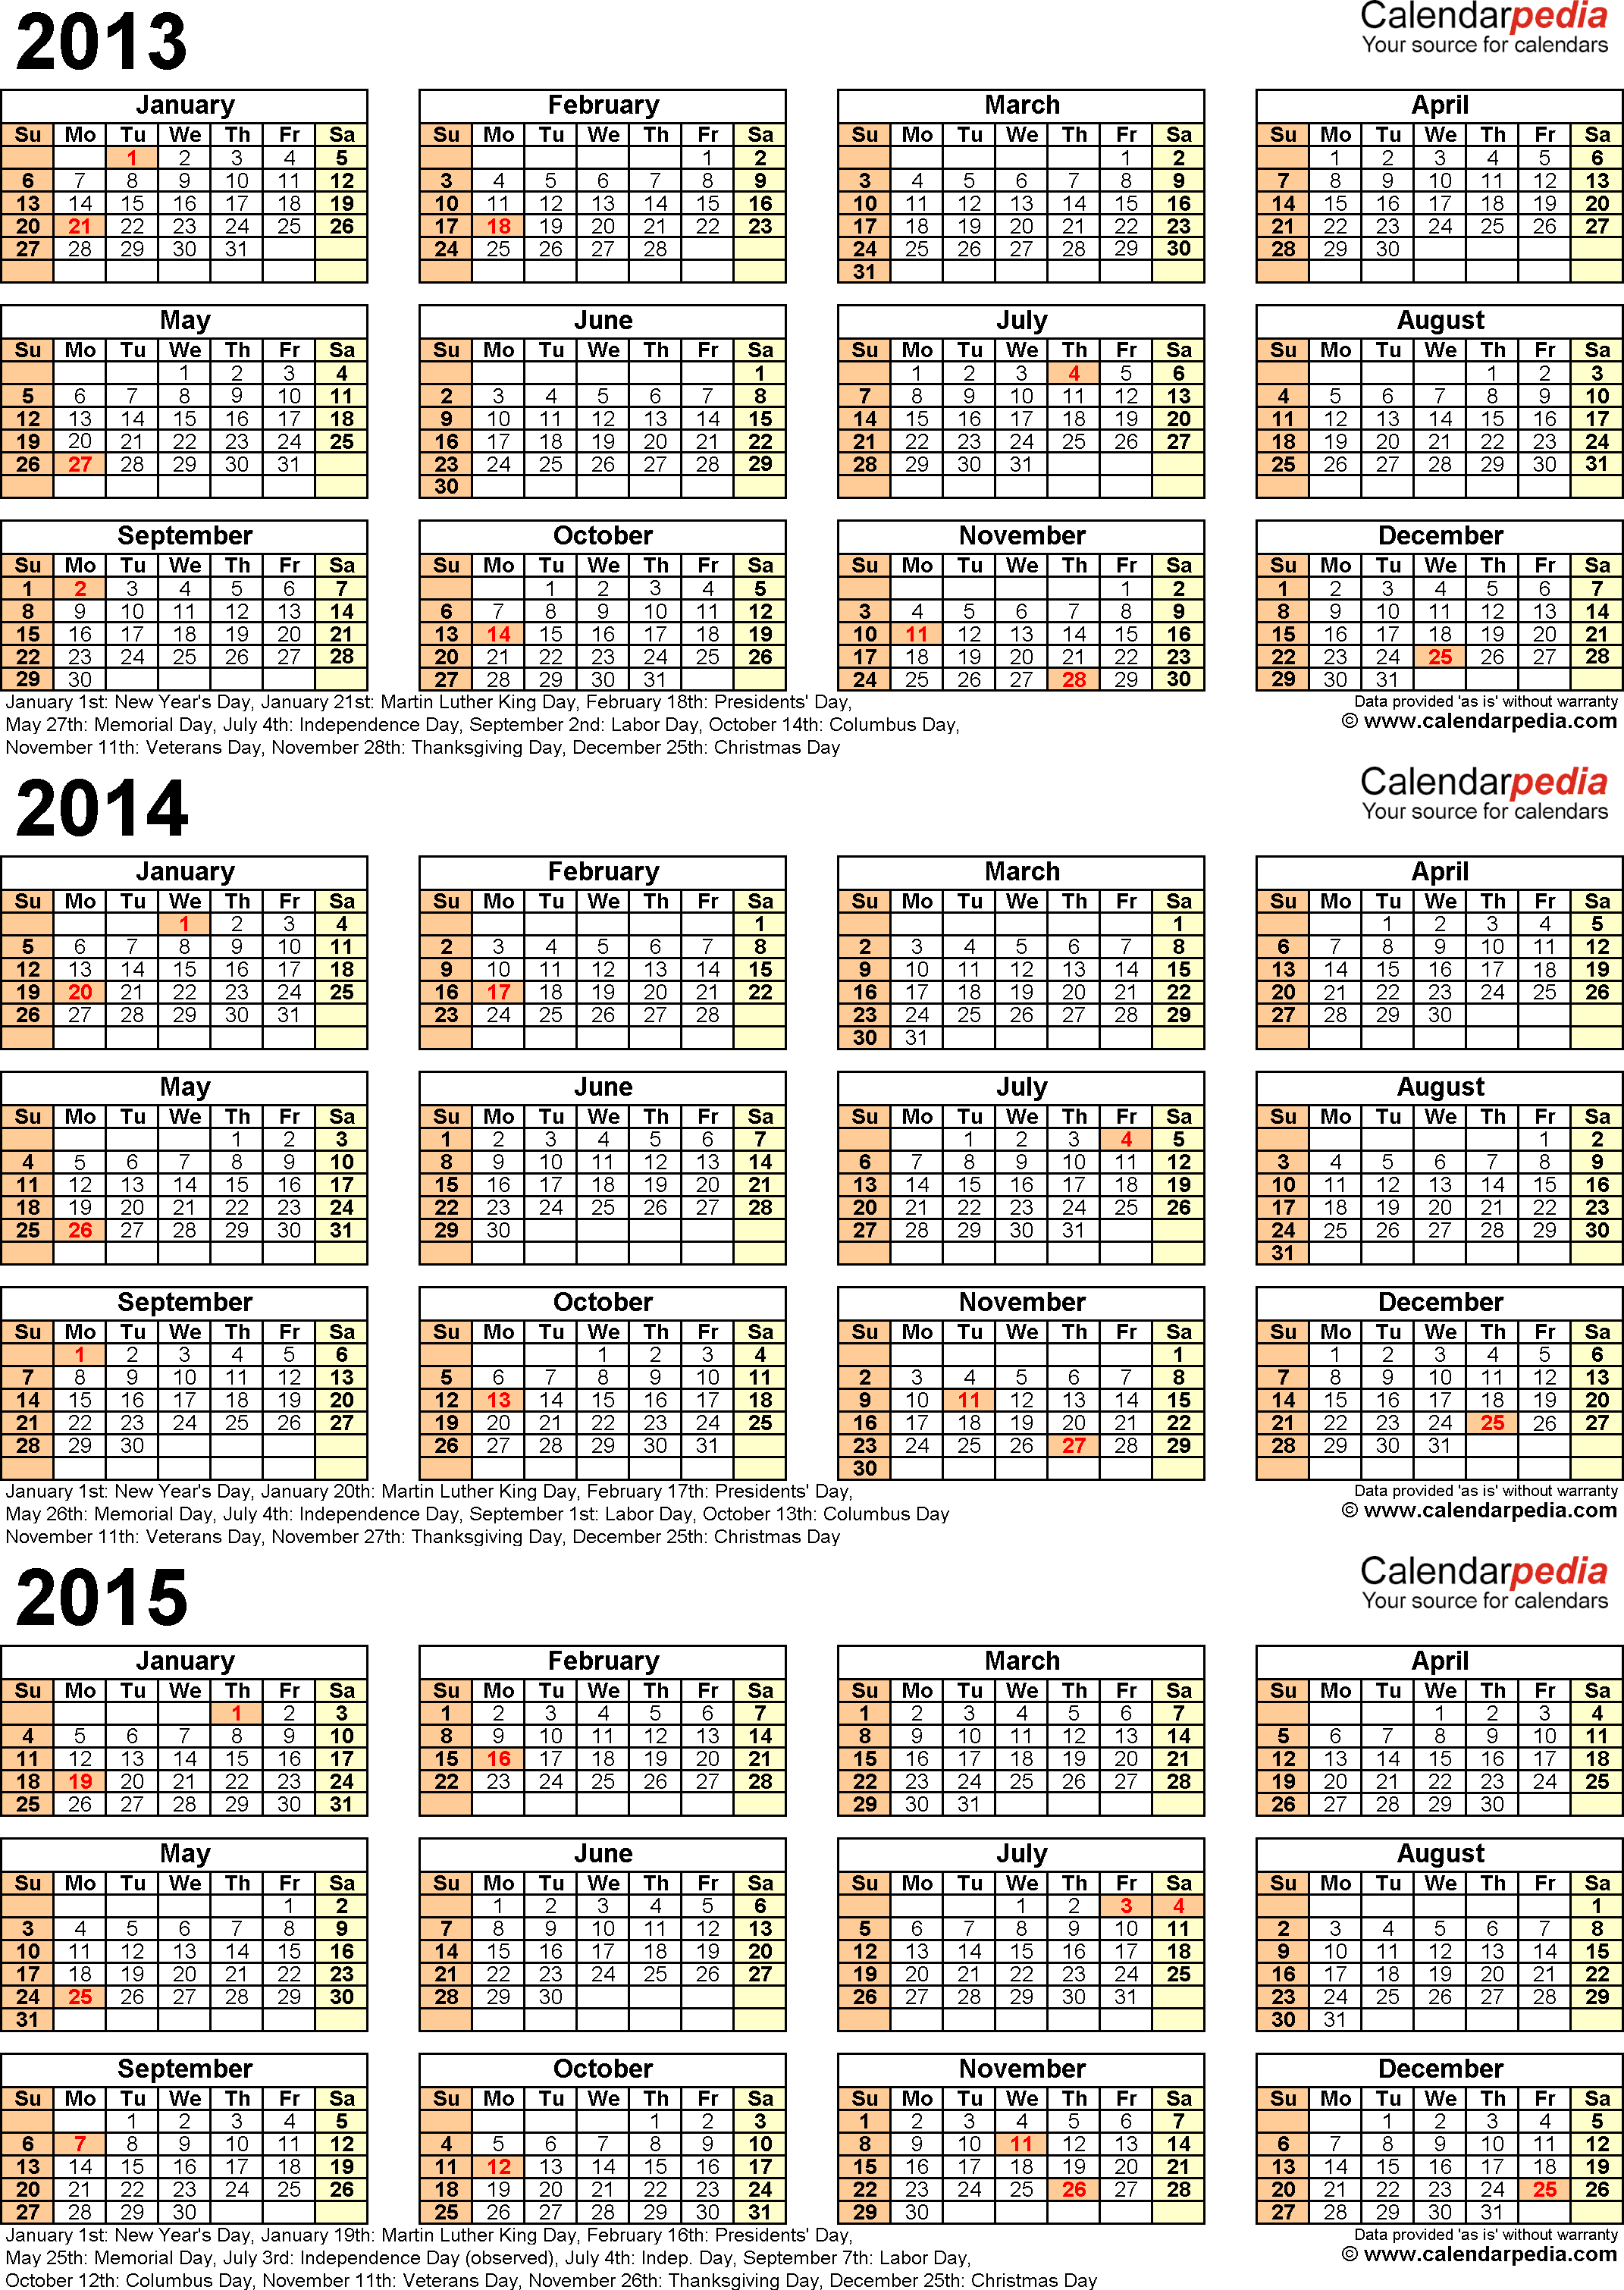 Template 6: Excel template for three year calendar 2013/2014/2015 (portrait orientation, 1 page)